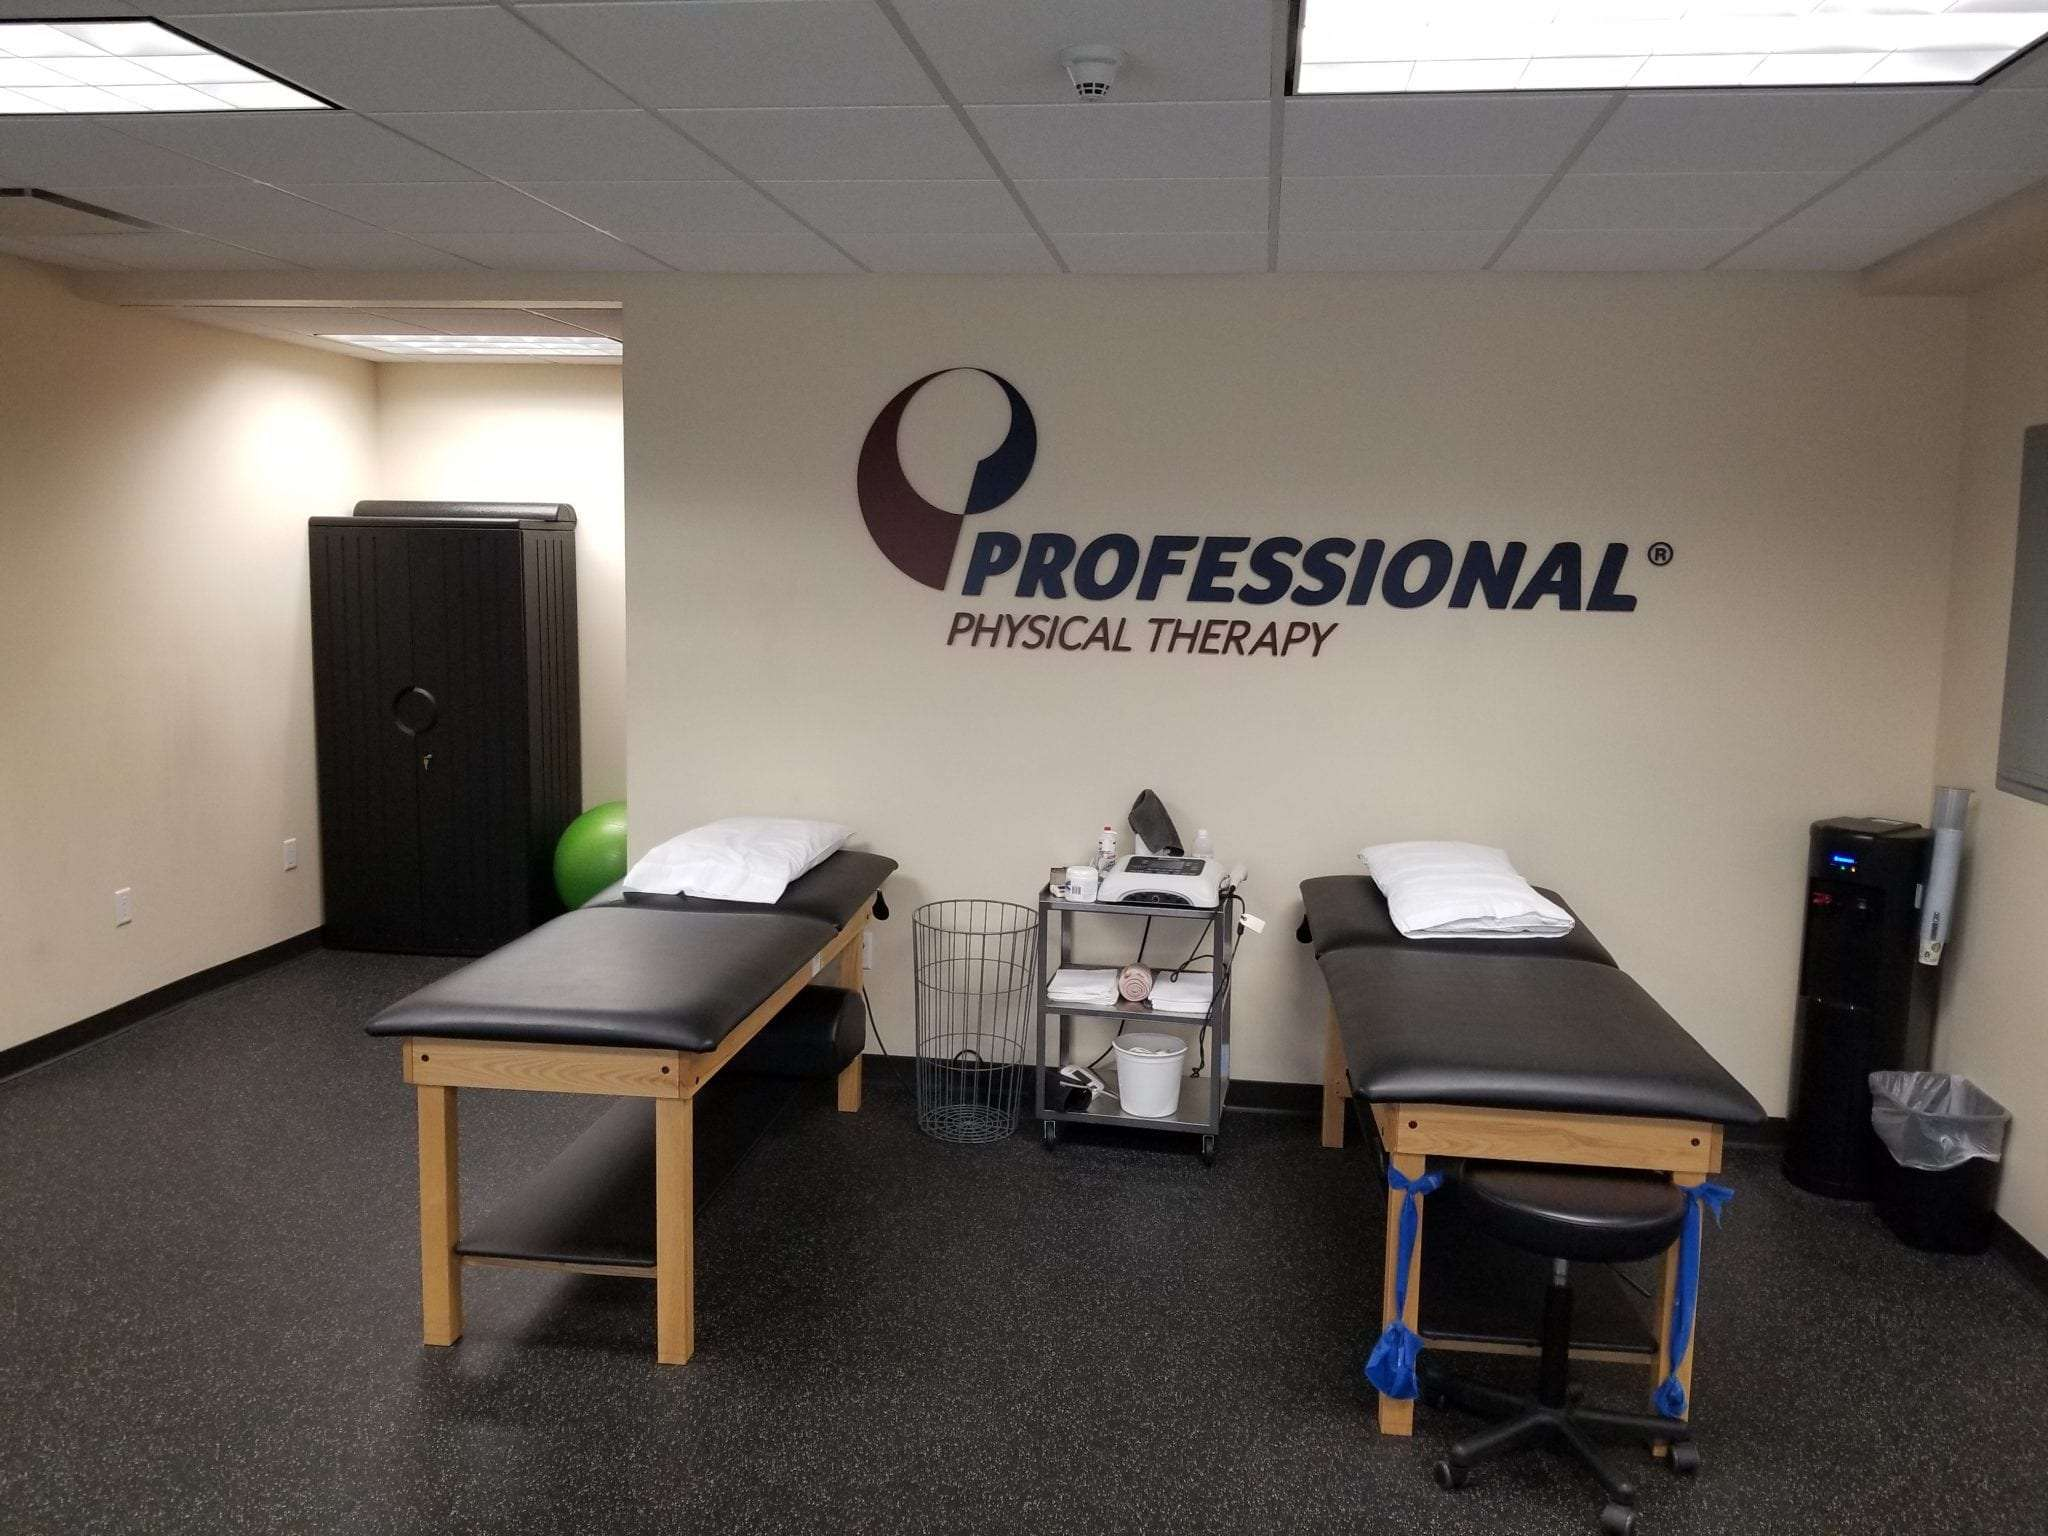 Here is a photo of two stretch beds at our physical therapy clinic in East Englewood, New Jersey.